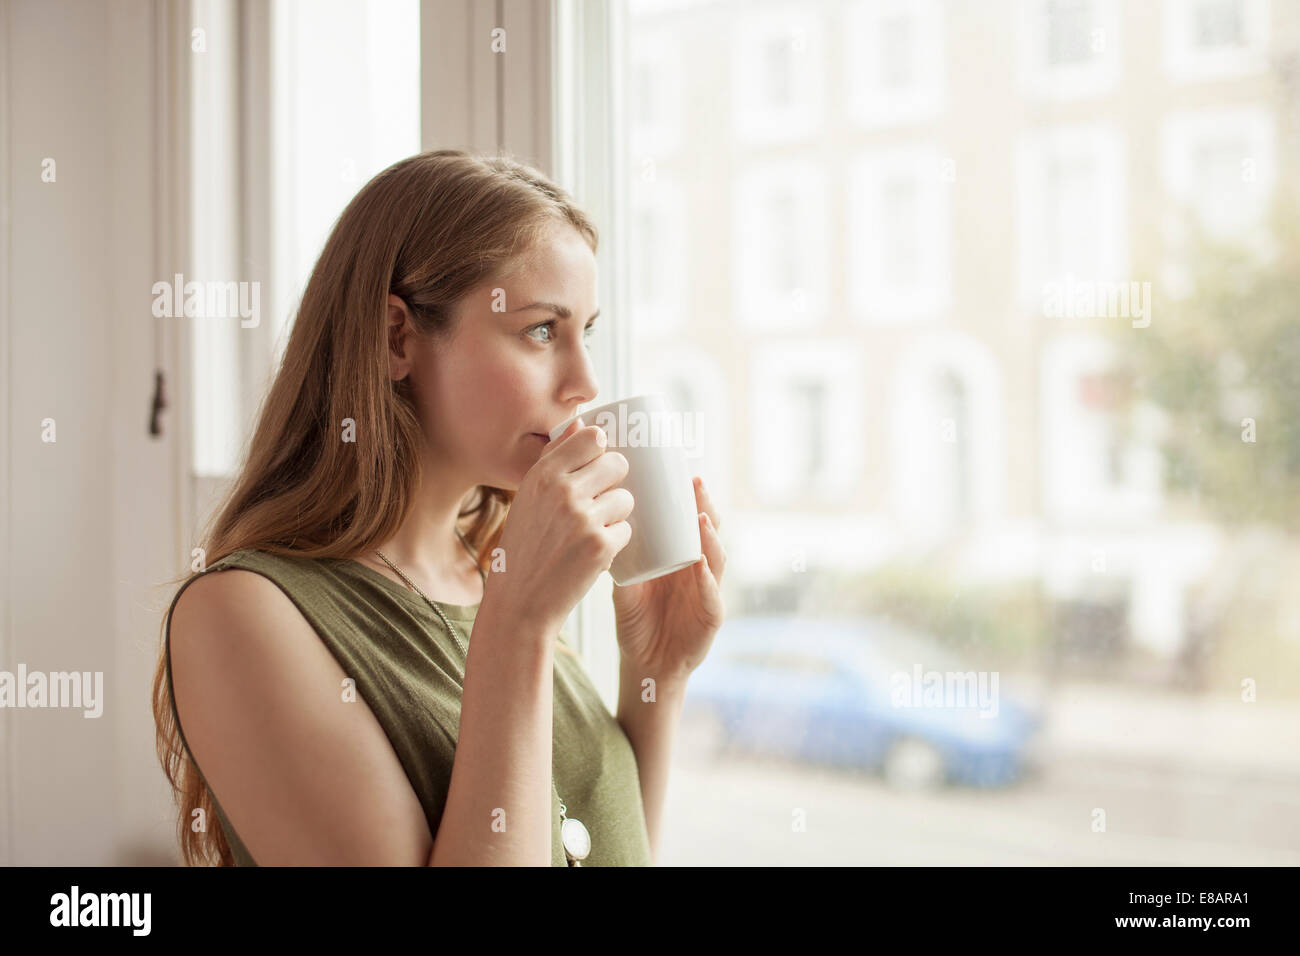 Young woman drinking coffee and gazing through sitting room window - Stock Image